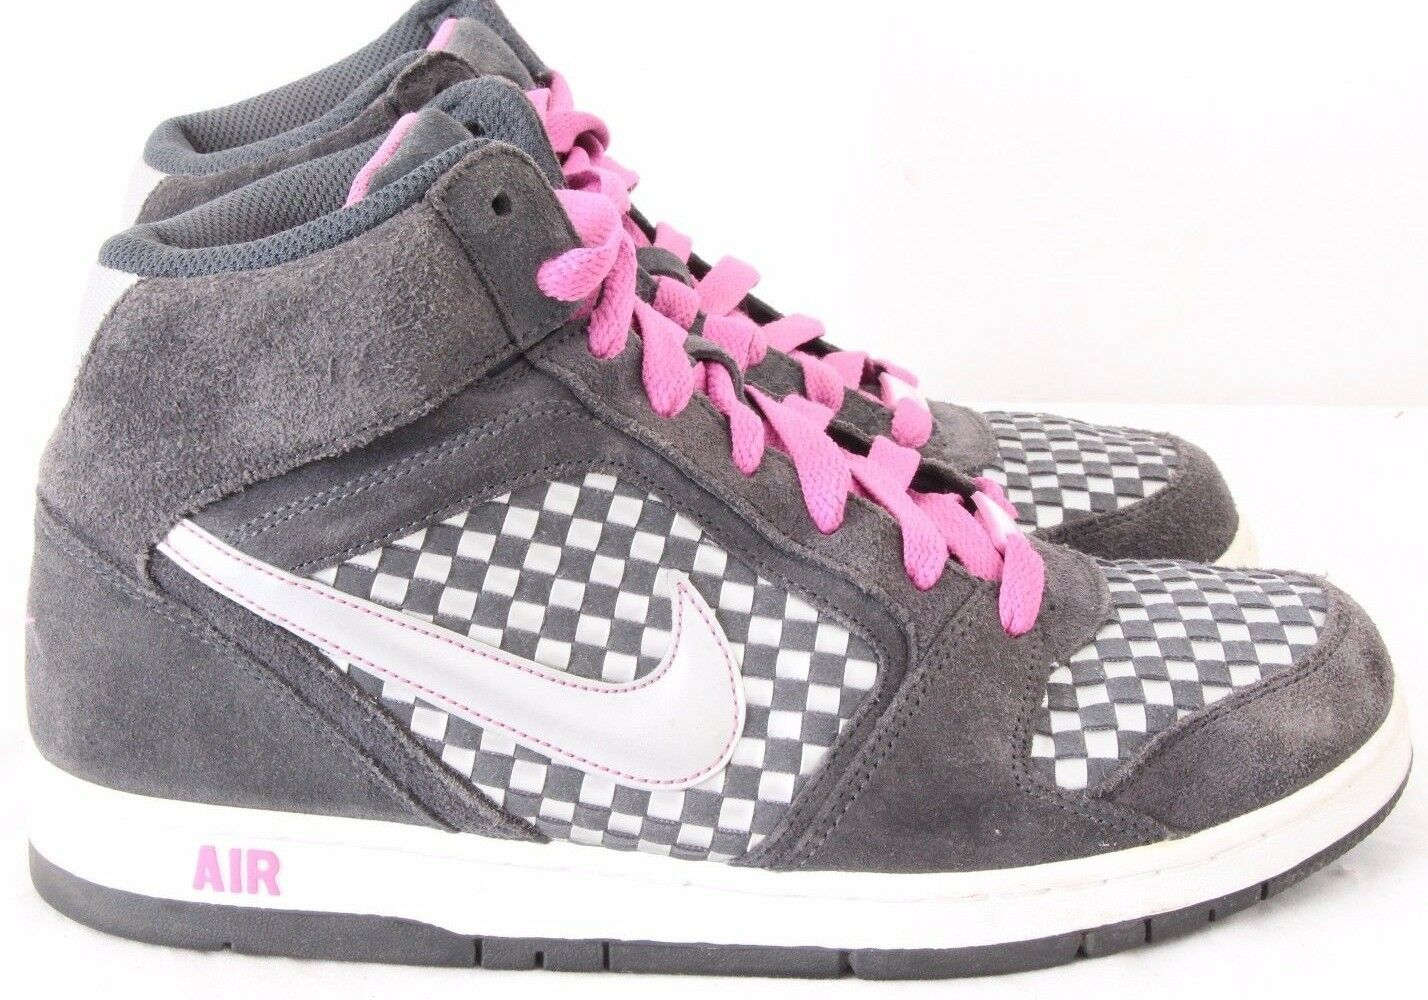 Nike 349443-001 Air Prestige III High Woven Checkered Sneakers Women's US 9.5